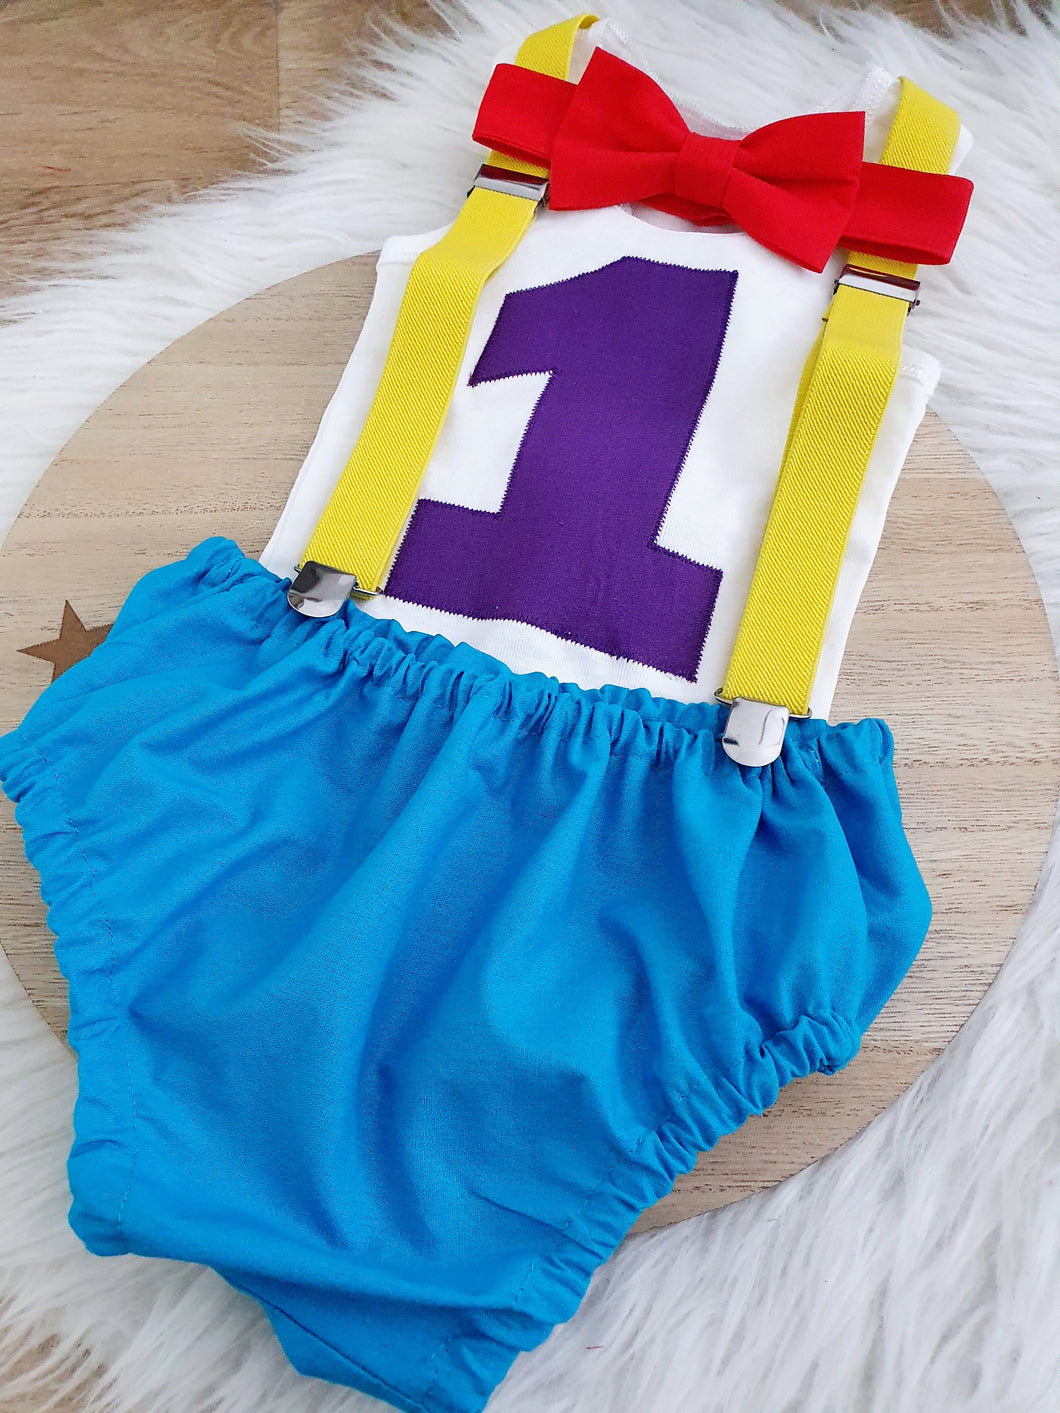 WIGGLY INSPIRED - Boys 1st Birthday - Cake Smash Outfit - Size 0, Nappy Cover, Tie, Singlet & Suspenders Set